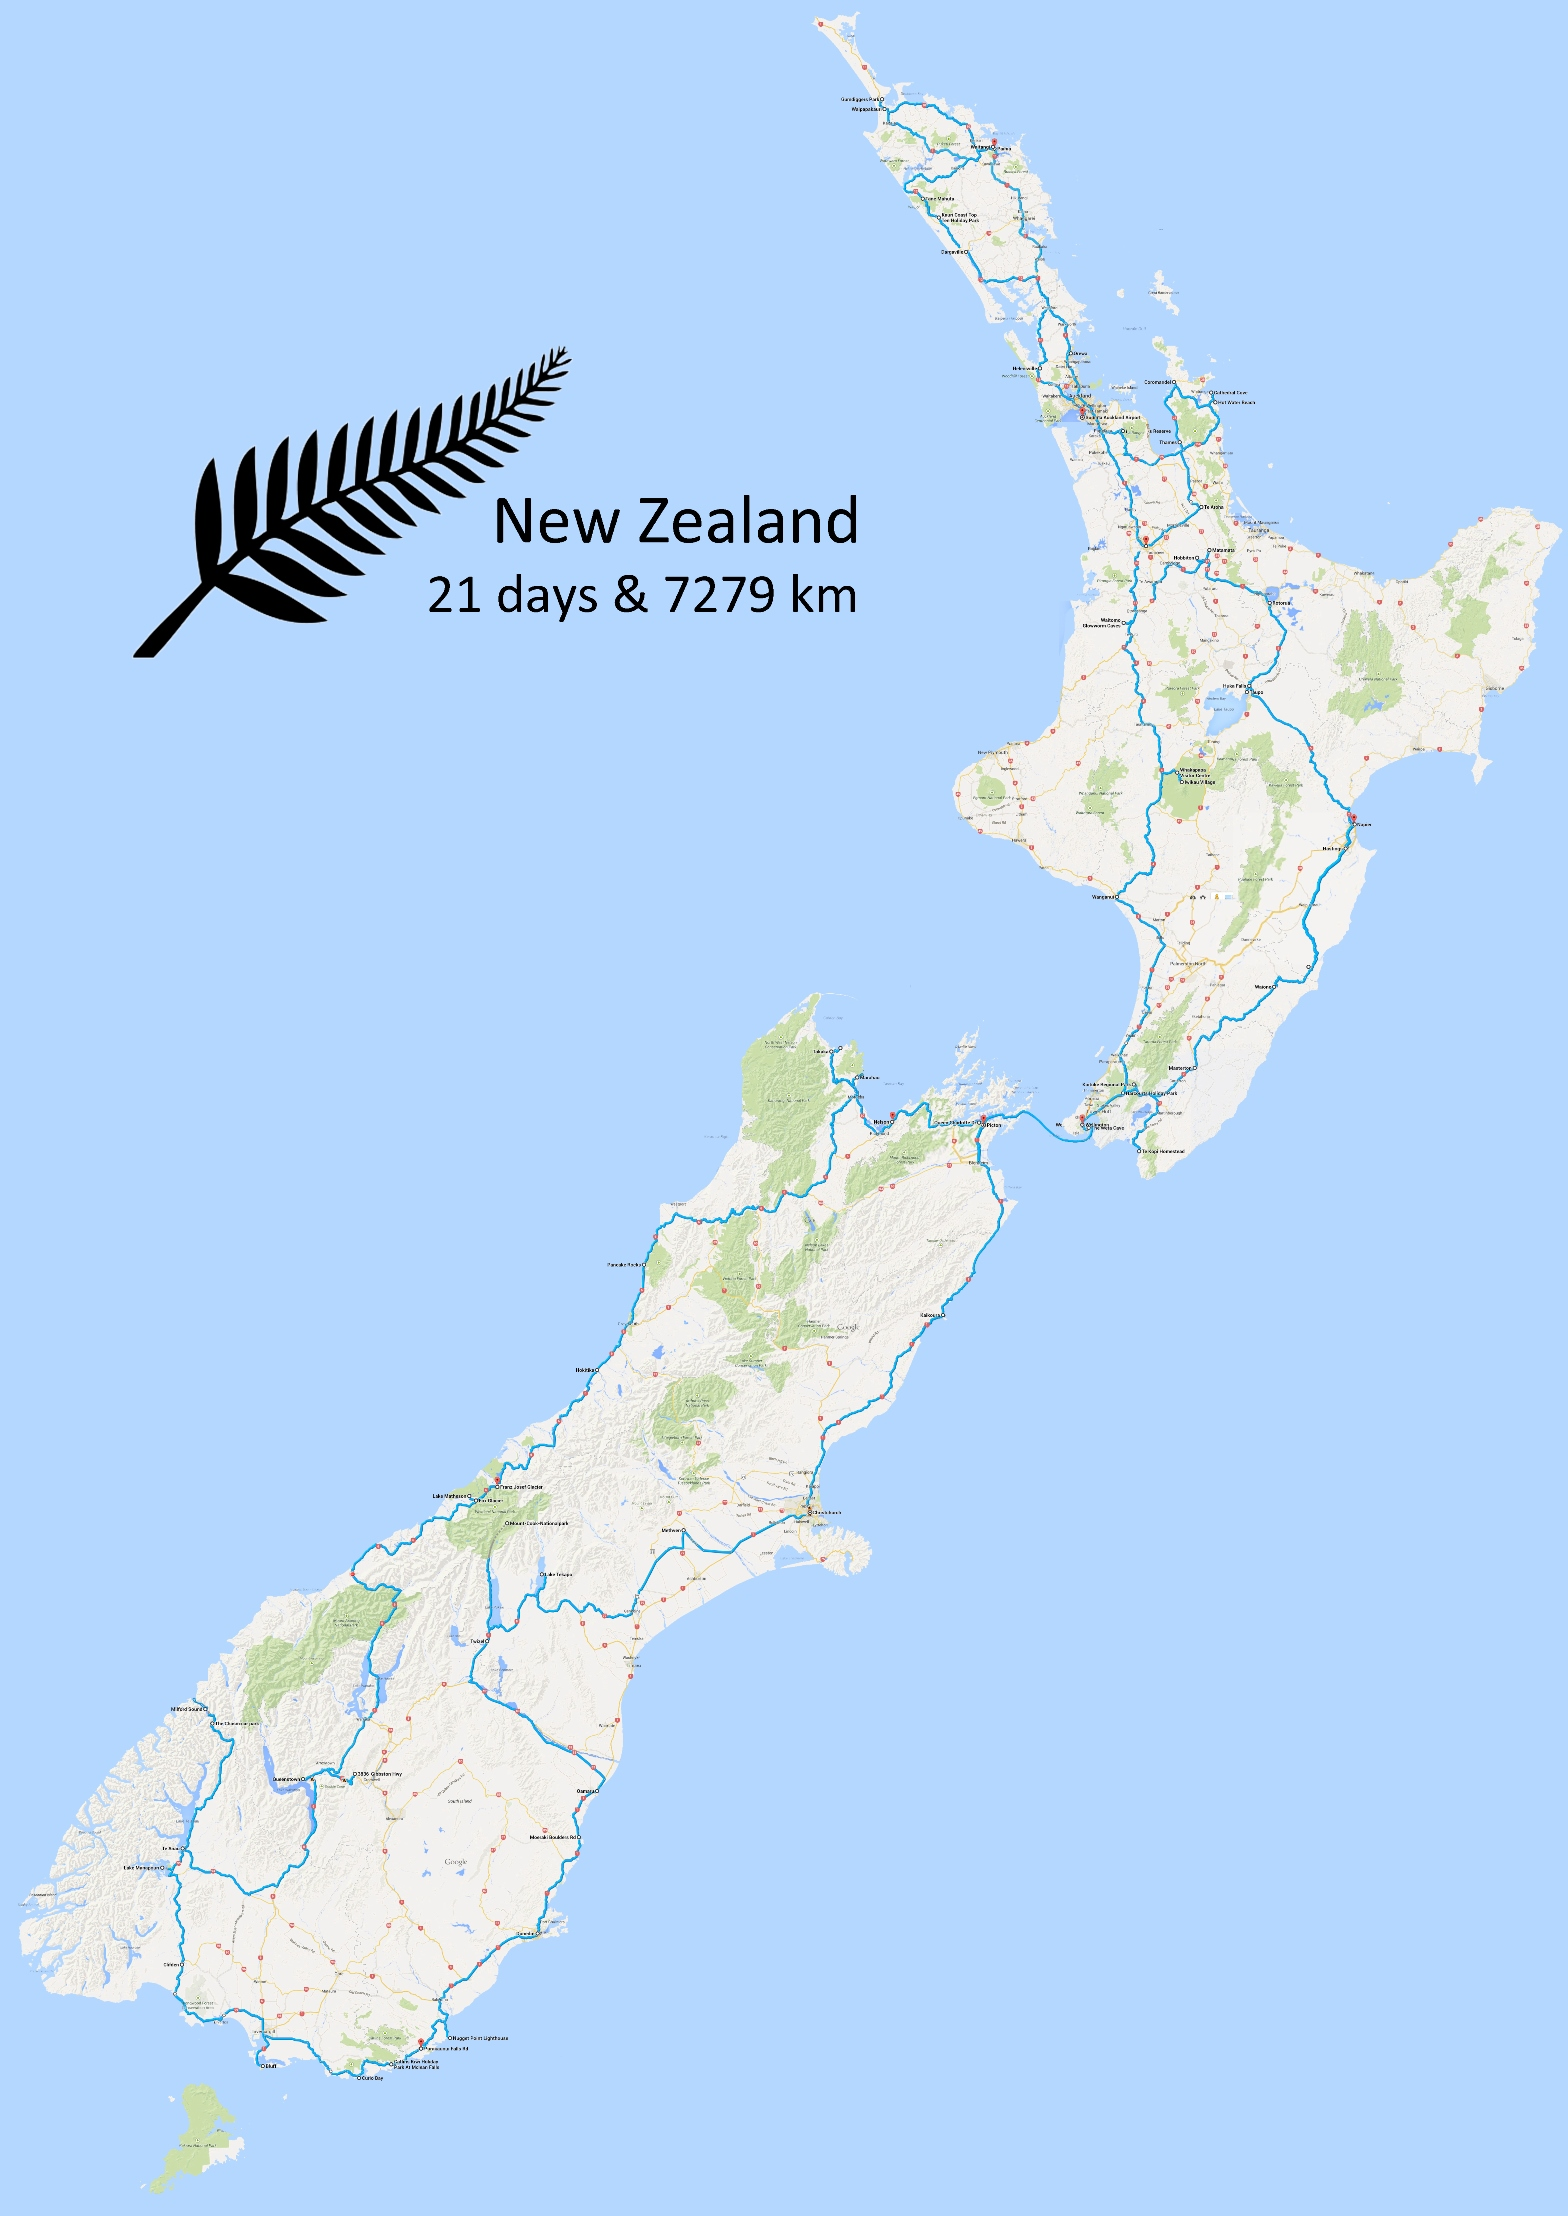 New Zealand - Tour map